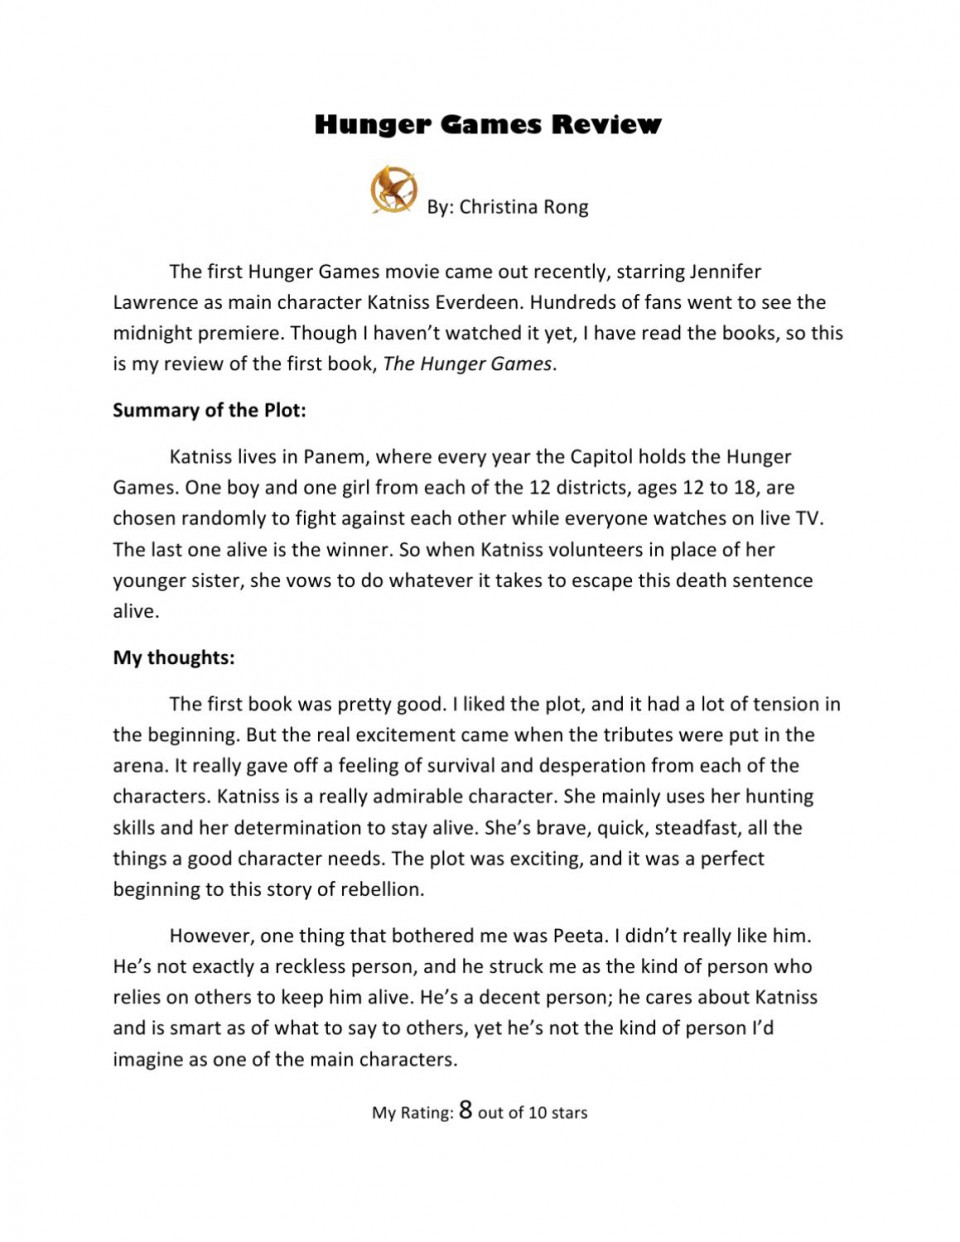 015 Essay Example Page 1 The Hunger Games Book Imposing Review 960